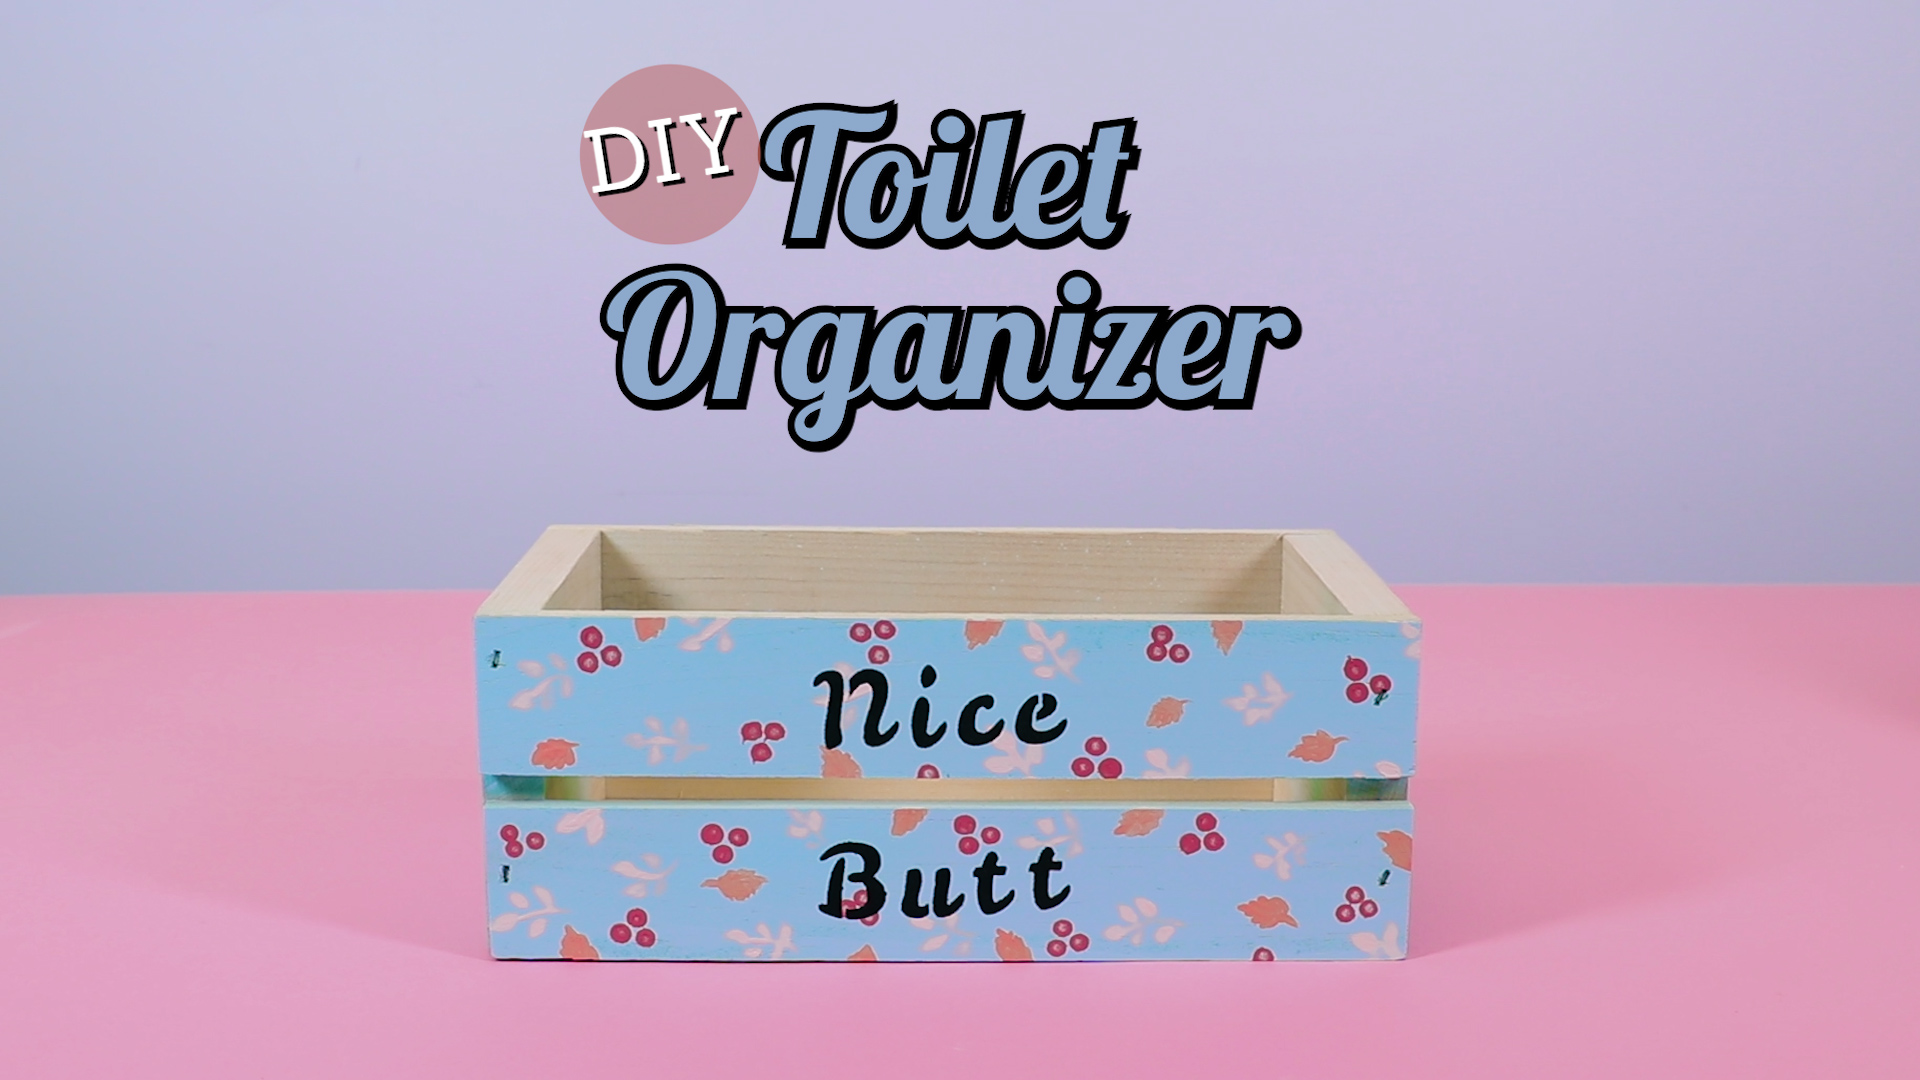 Every bathroom needs this cheeky DIY toilet organizer